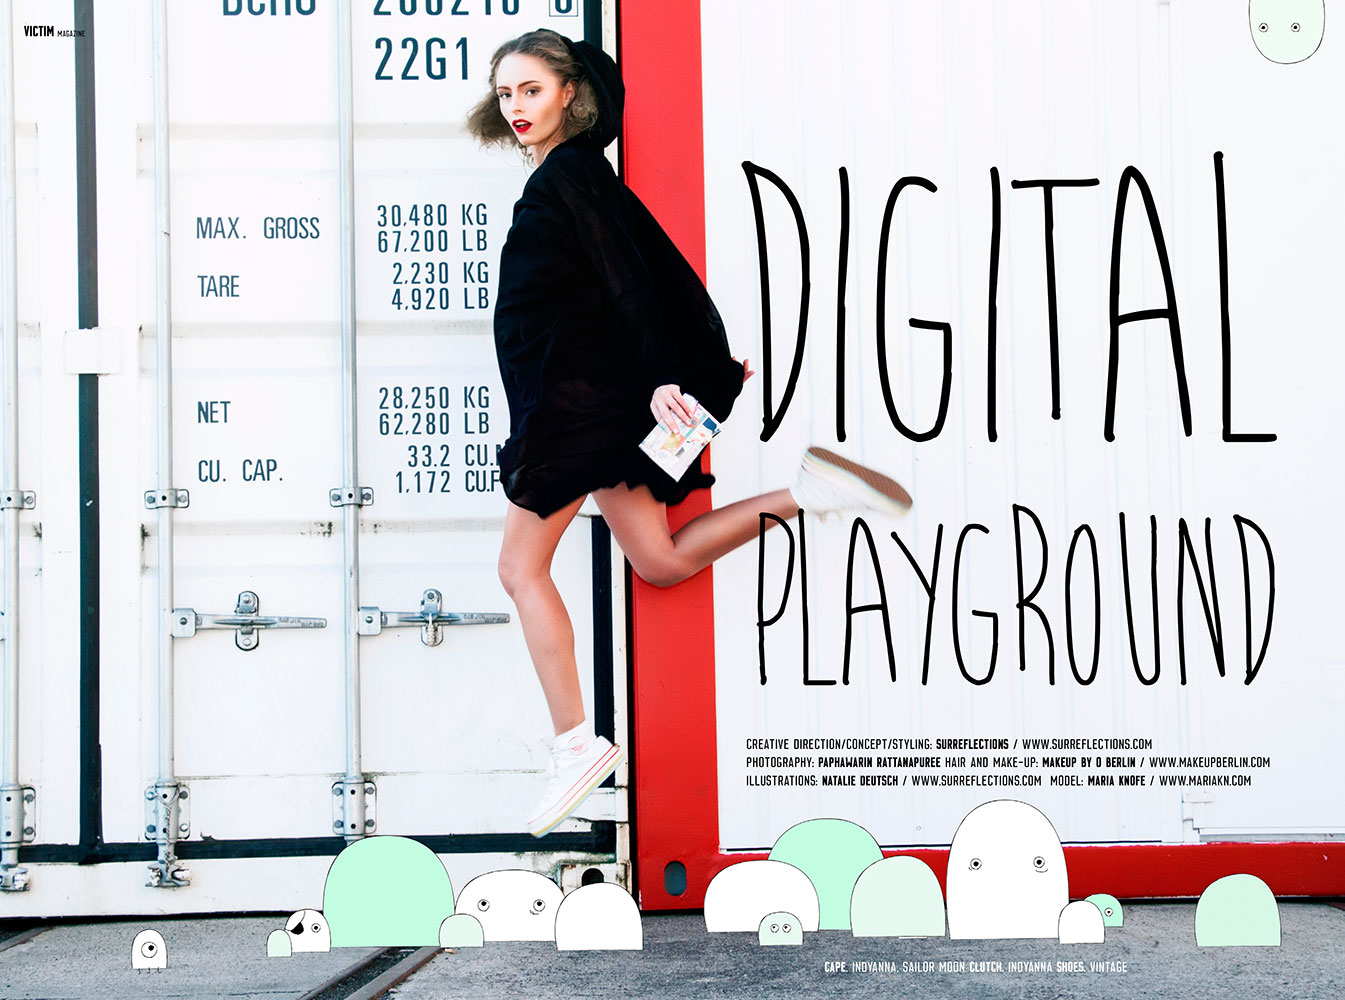 www.digital playground.com